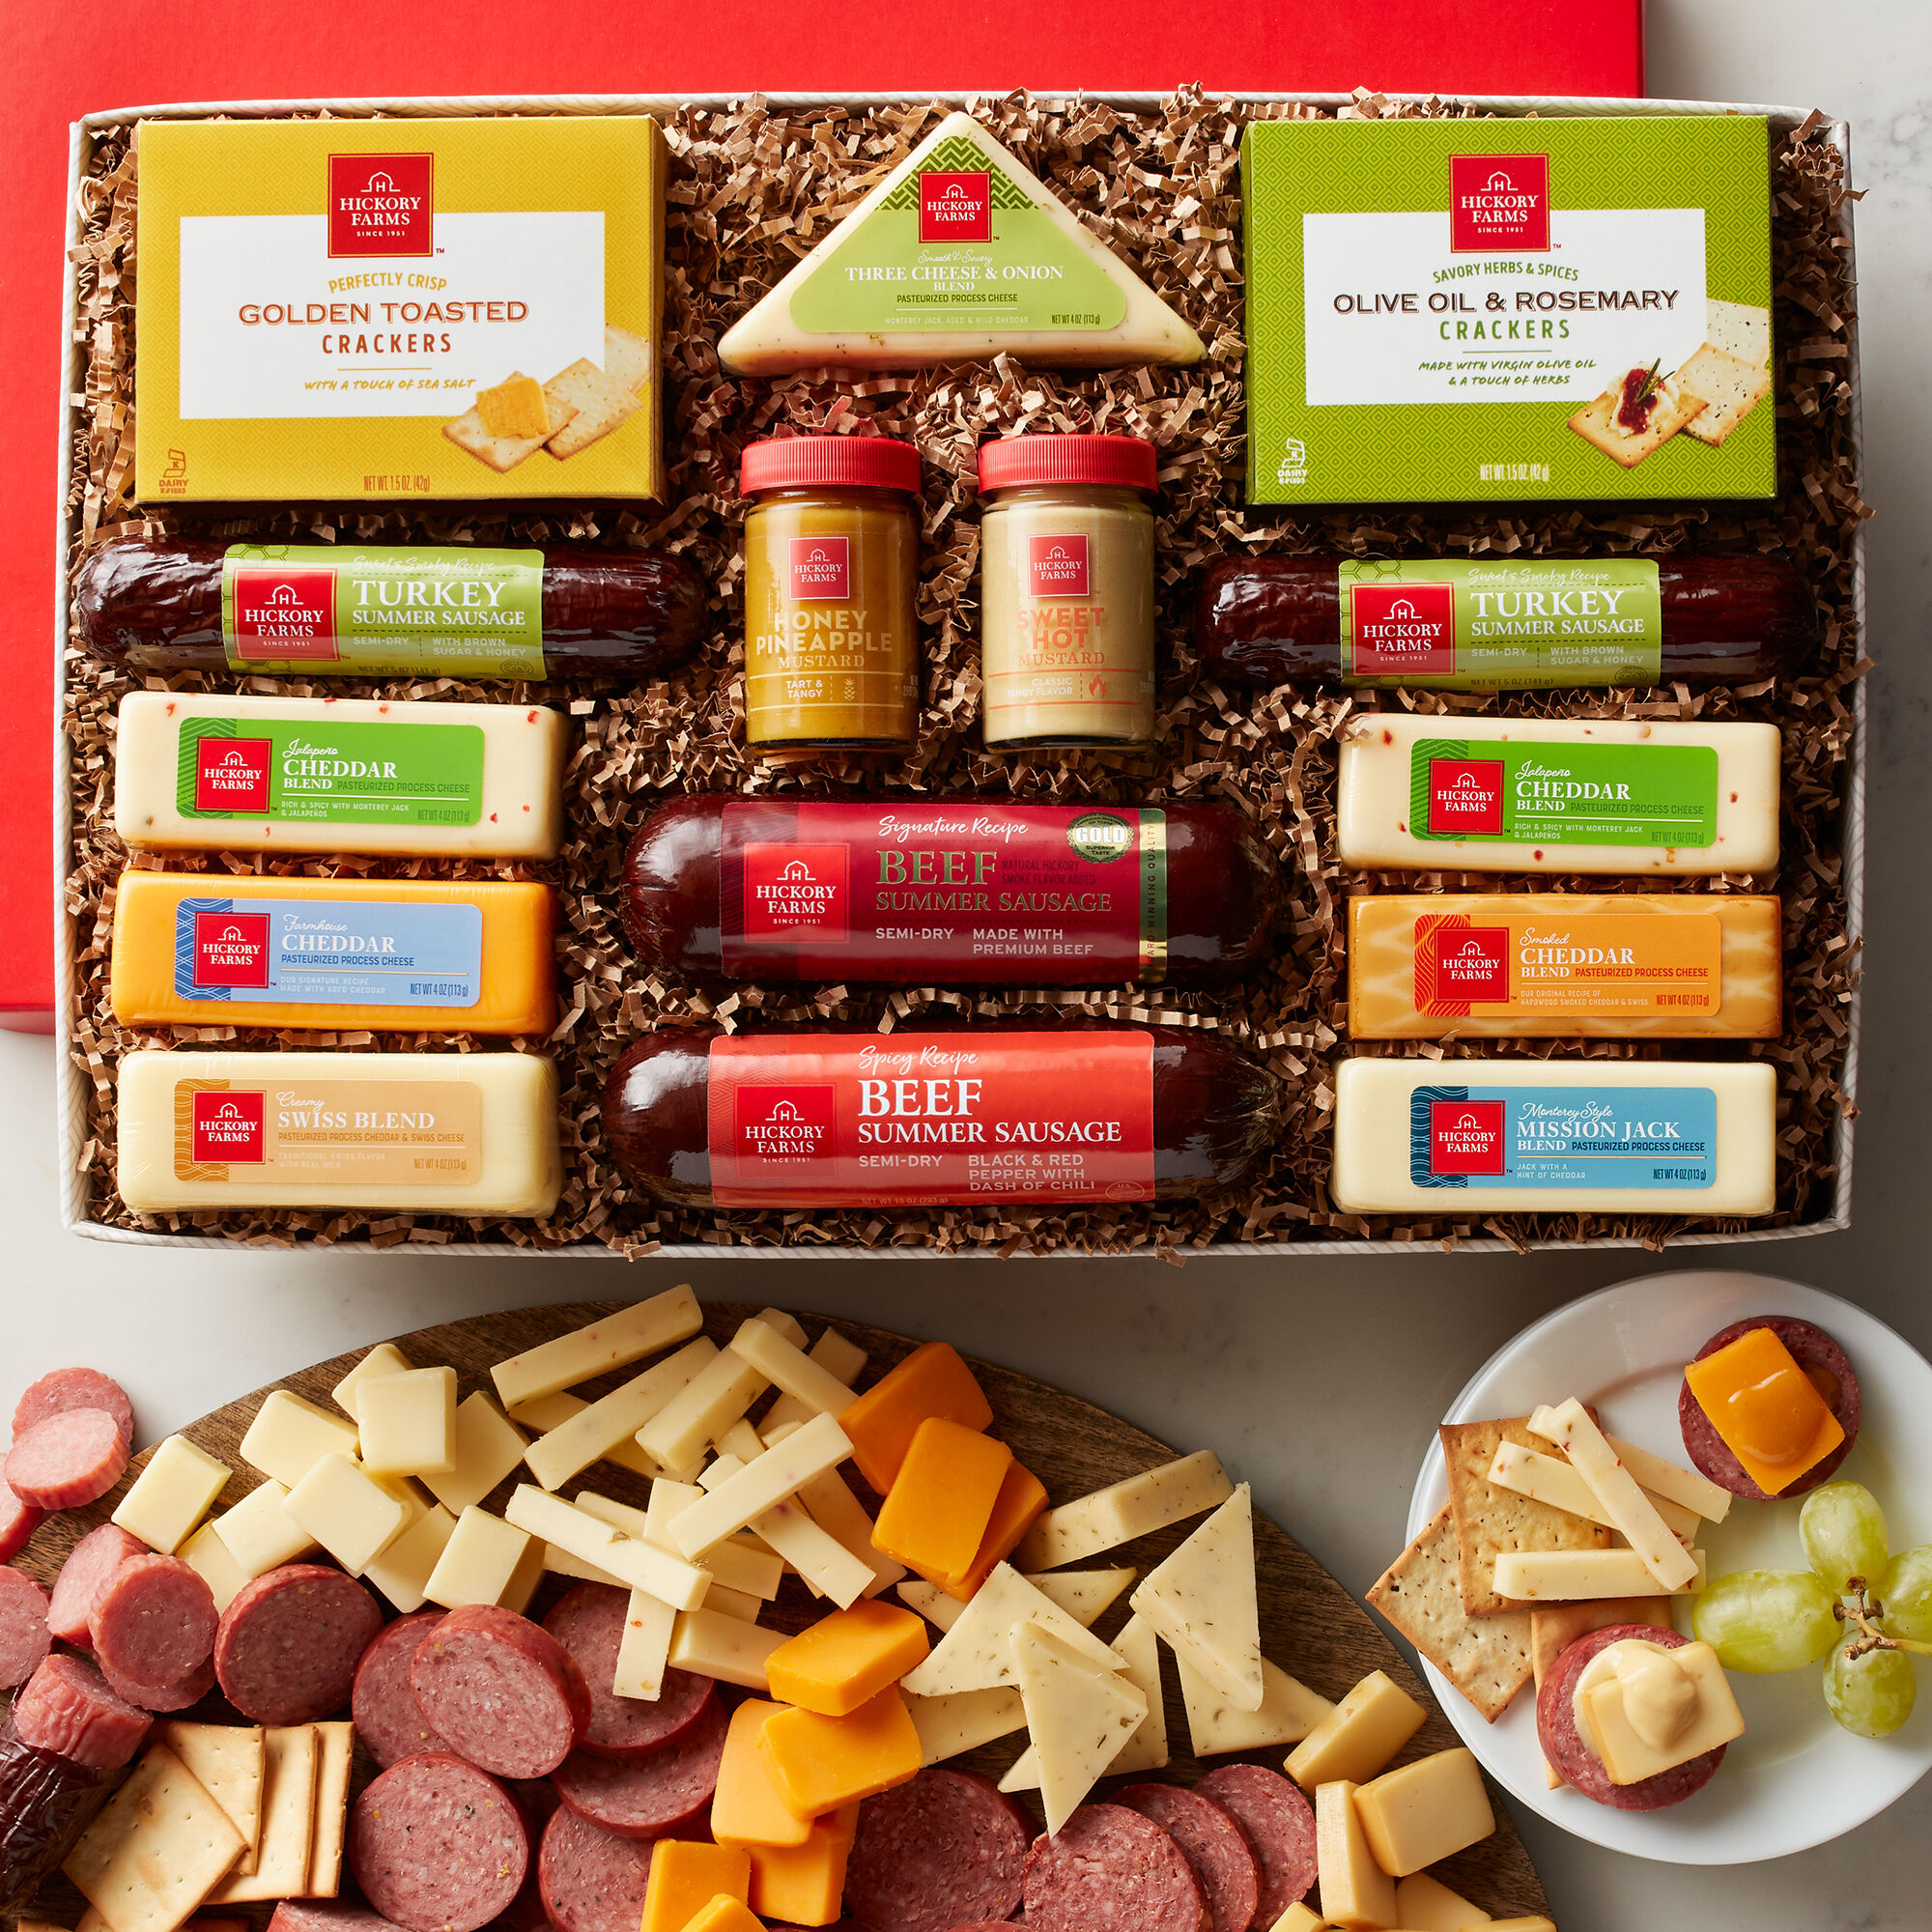 The Hearty Party gift box includes beef summer sausage turkey summer sausage mustard & Meat and Cheese Gift Baskets | Hickory Farms